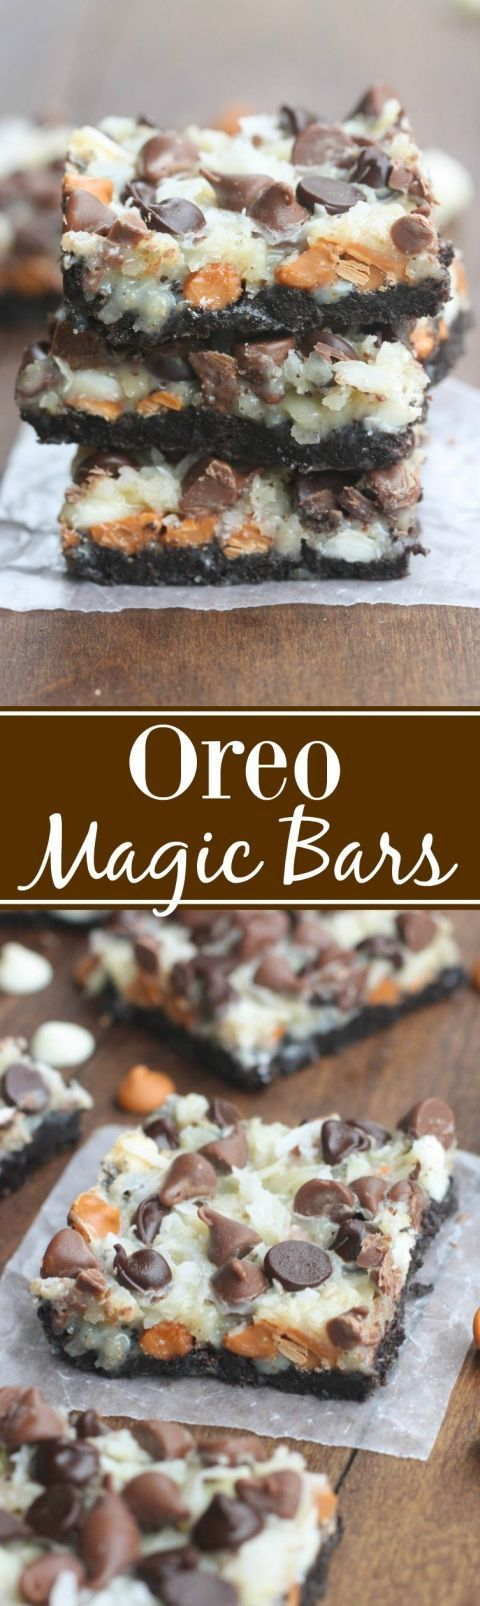 Oreo Magic Cookie Bars Recipe via Tastes Better From Scratch - The BEST Christmas Cookies, Fudge, Candy, Barks and Brittles Recipes - Favorites for Holiday Treats Gift Plates and Goodies Bags!